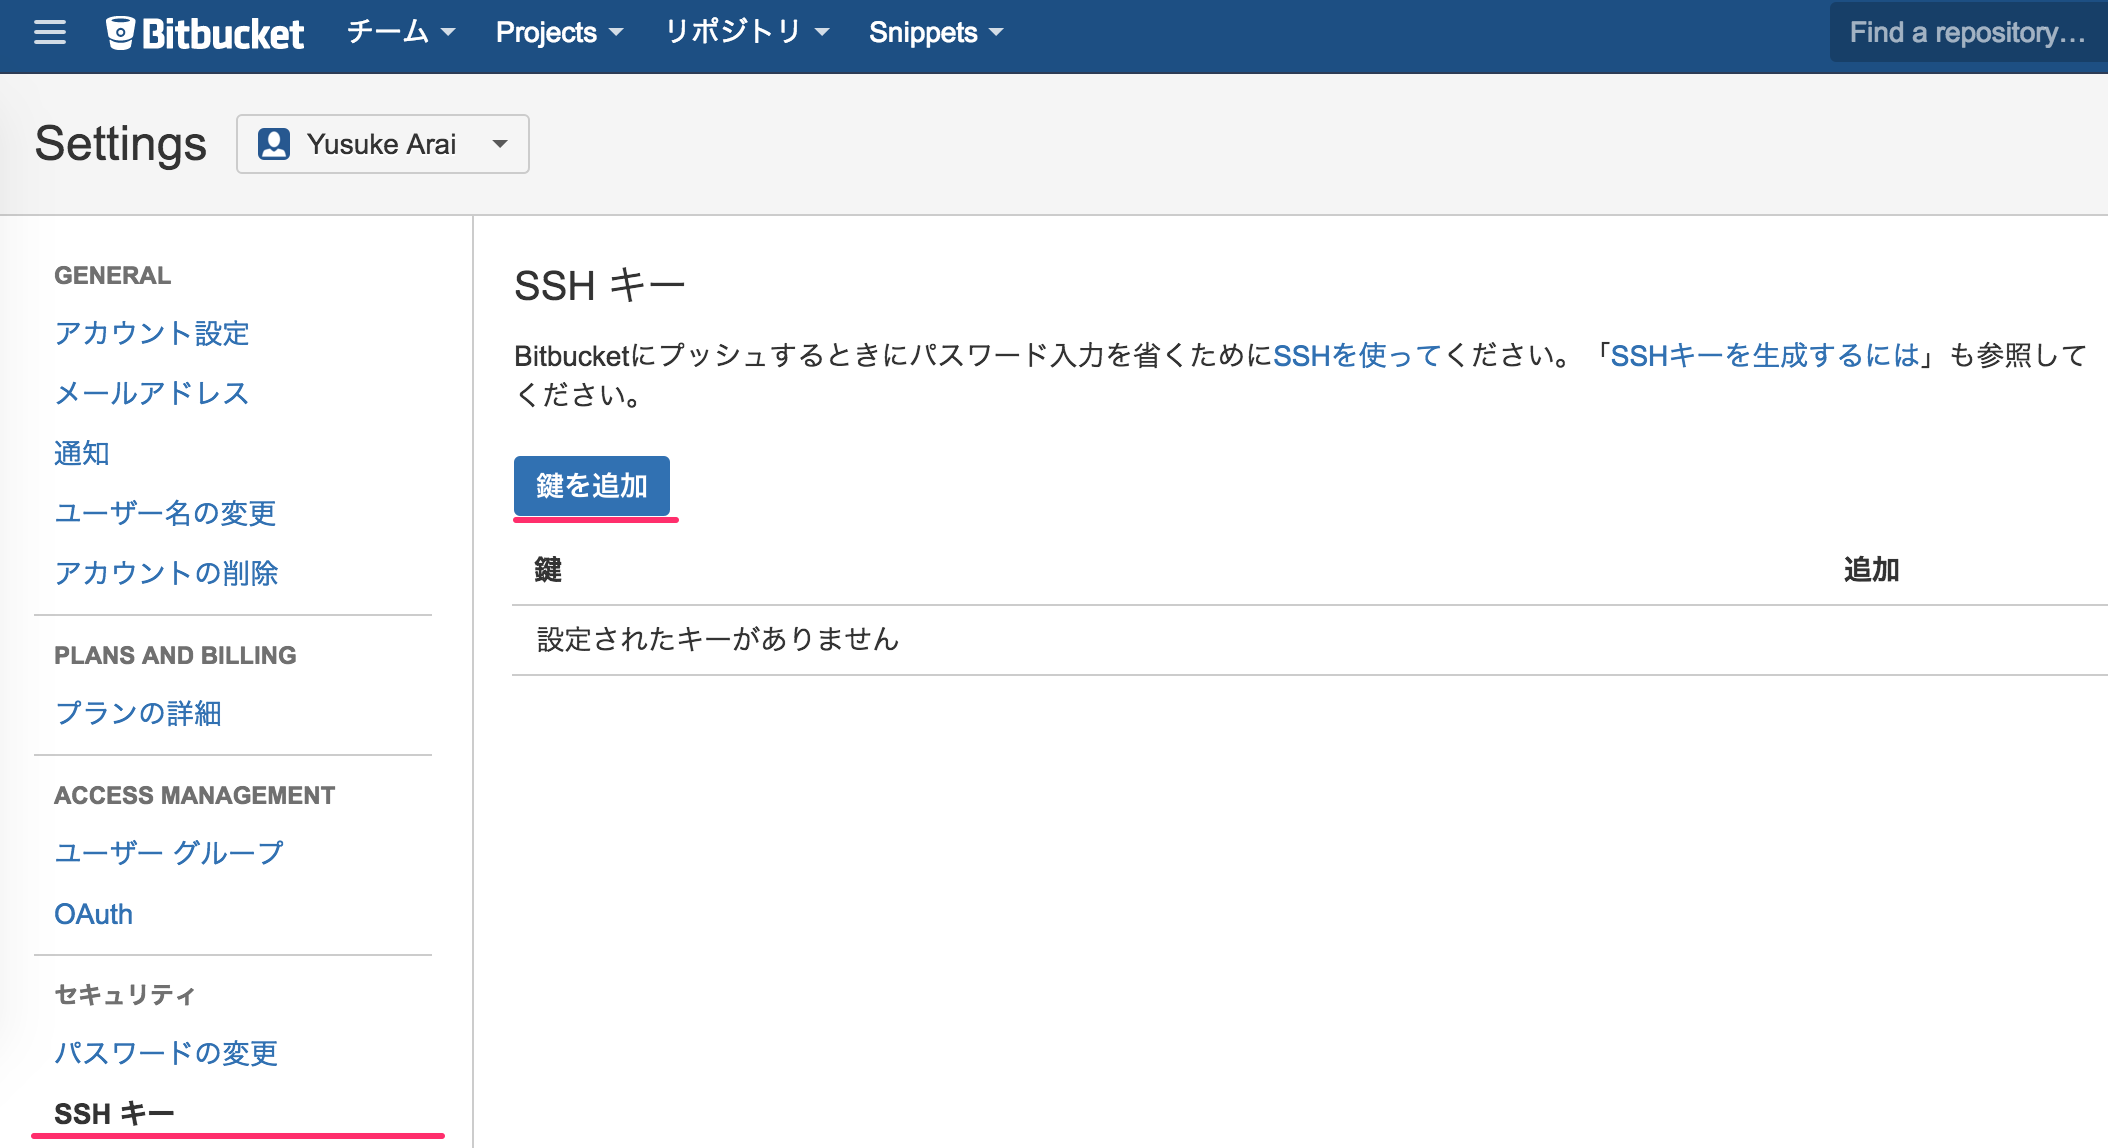 araiyusuke___ssh_キー_—_Bitbucket.png